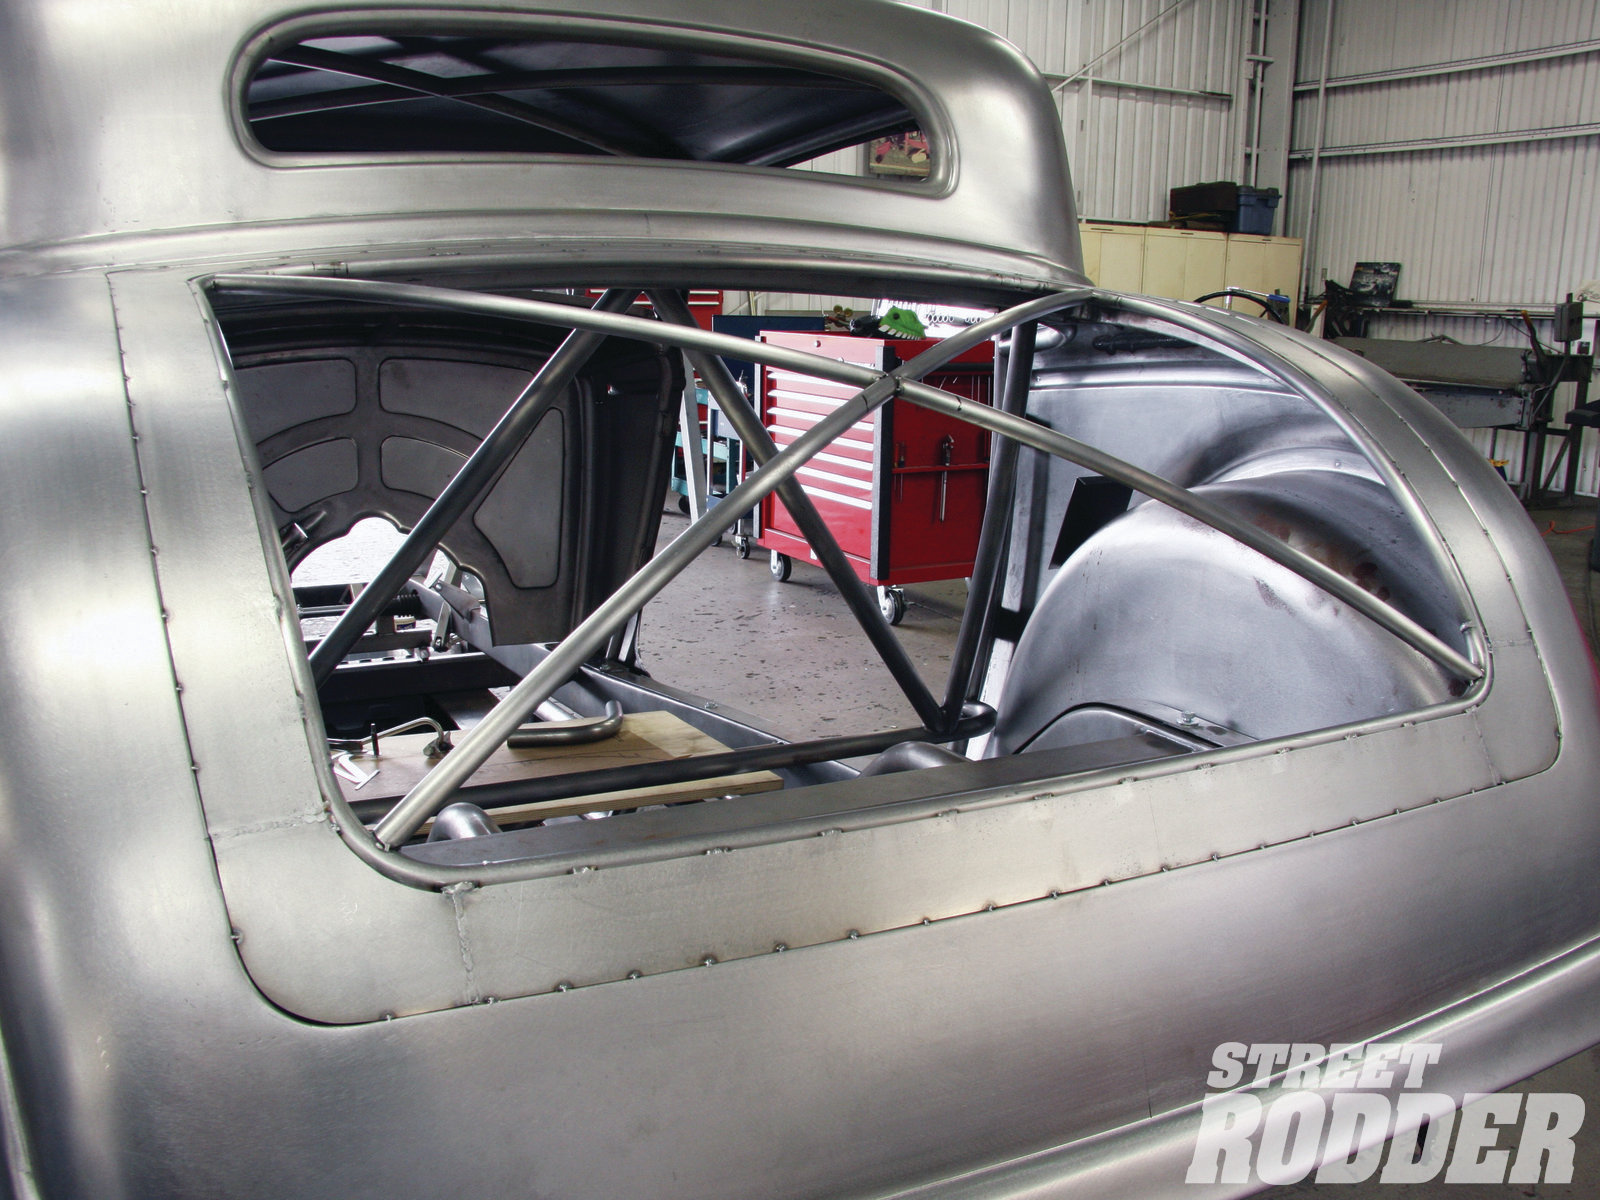 5| Similar to the way Ferrari doors and decklids were made in the '50s, an inner tubing structure was formed for Warren's decklid, to which an out flange (about 3 inches wide) was added. After the decklid's skin is rolled out, the edge of the skin will fold over the outside edge of the flange, securing it in place. The inner structure will remain as well.